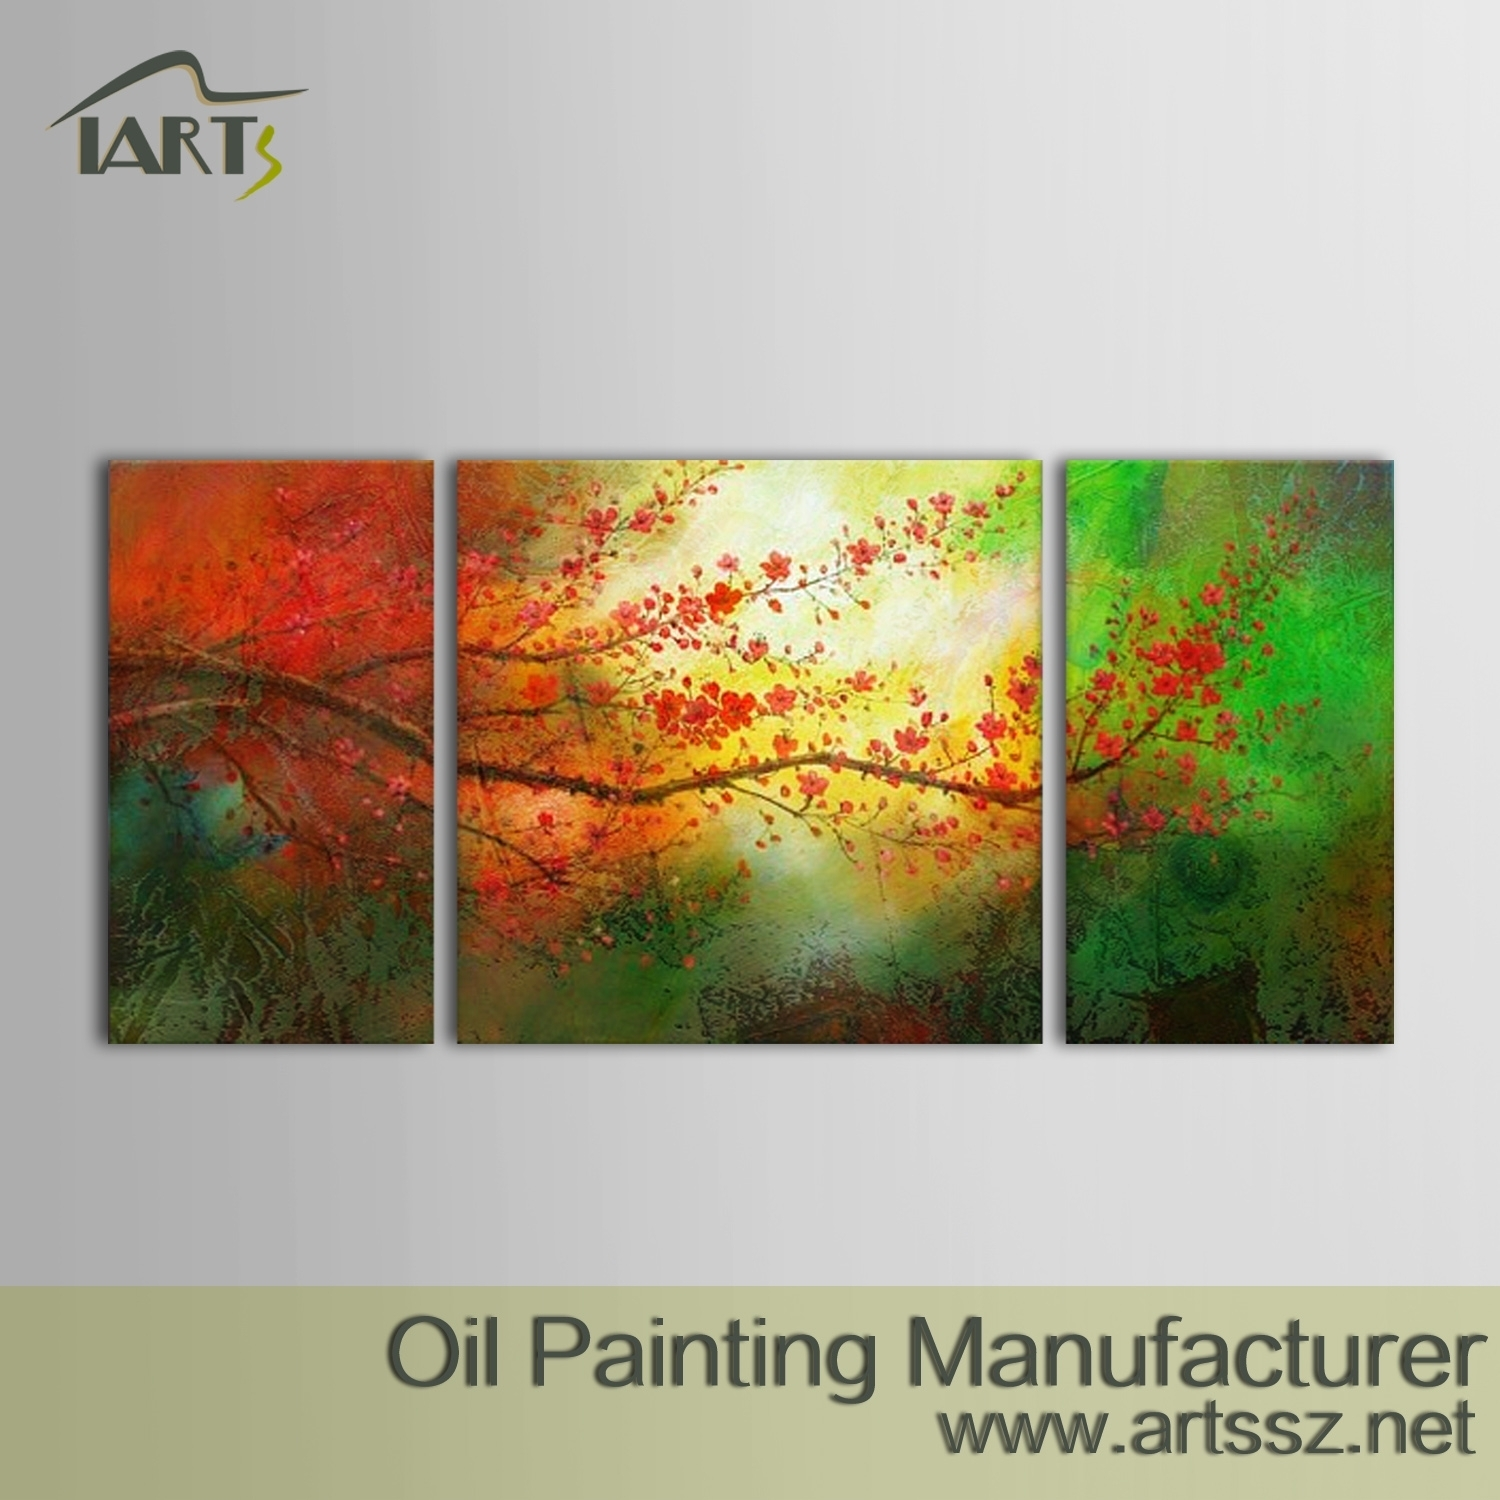 100% Handmade Abstract Oil Painting - Iarts - Professional Wall Art regarding Abstract Oil Painting Wall Art (Image 2 of 20)